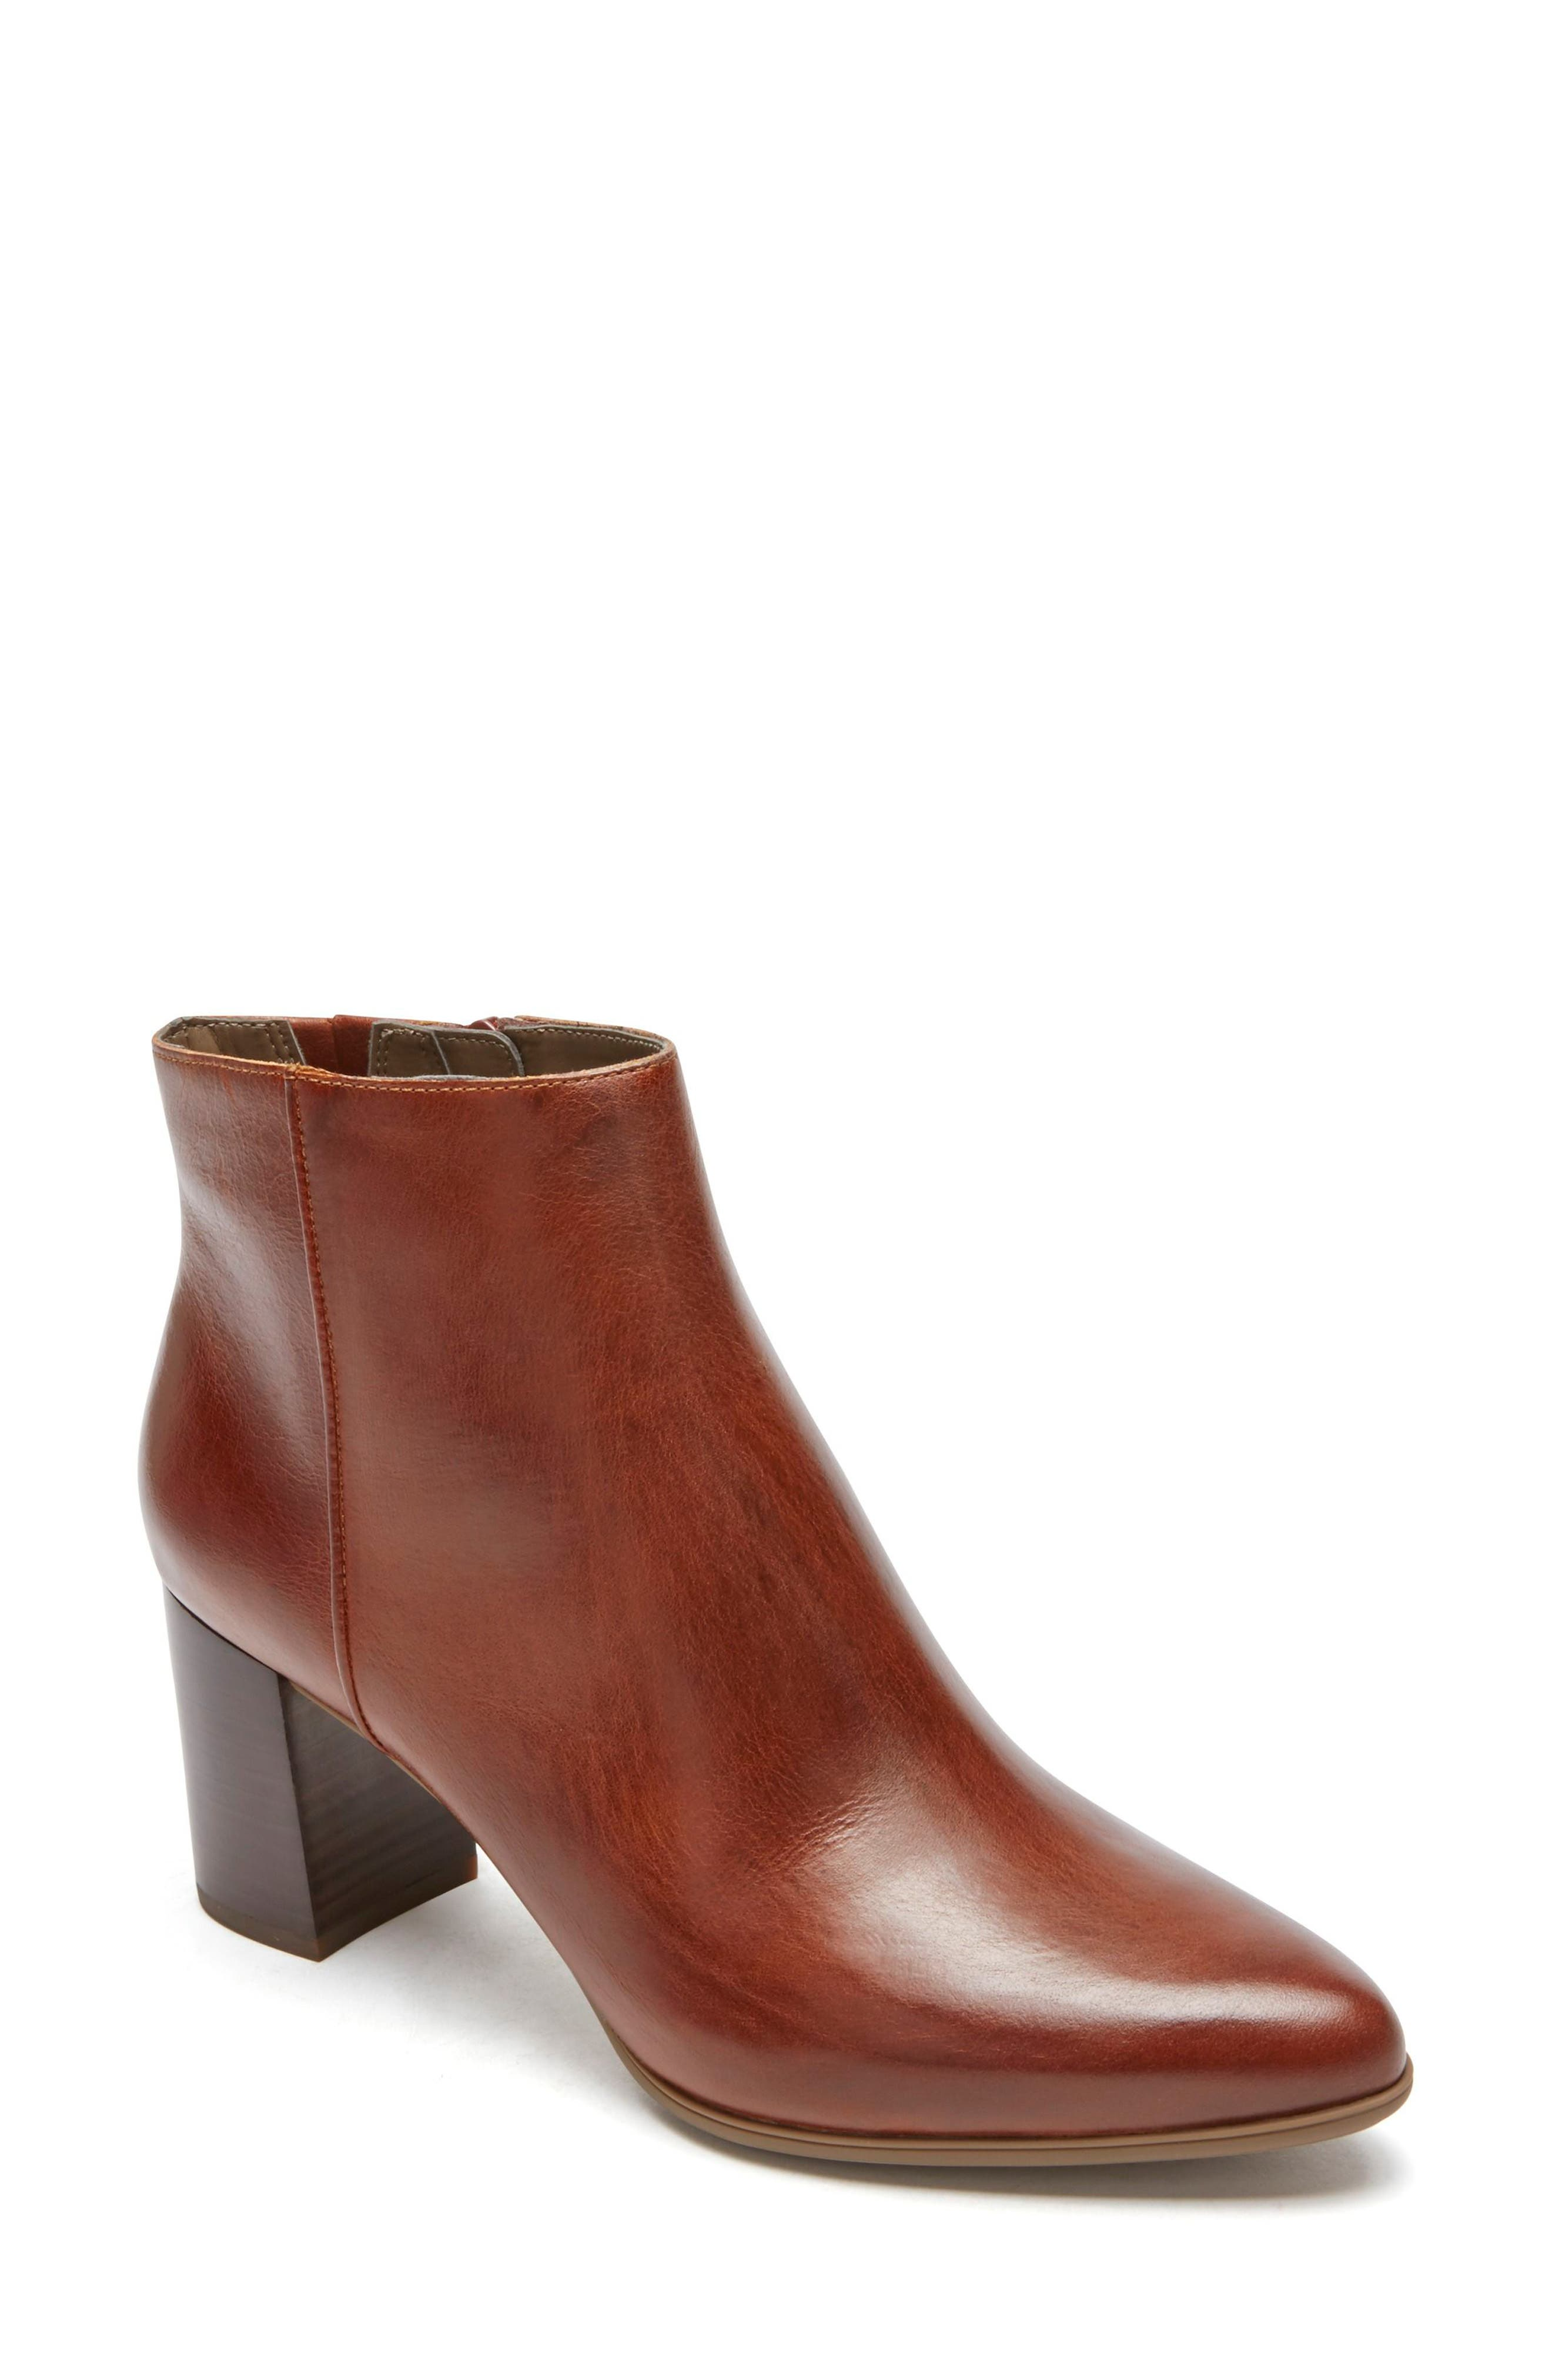 Lynix Luxe Bootie,                             Main thumbnail 1, color,                             Saddle Leather